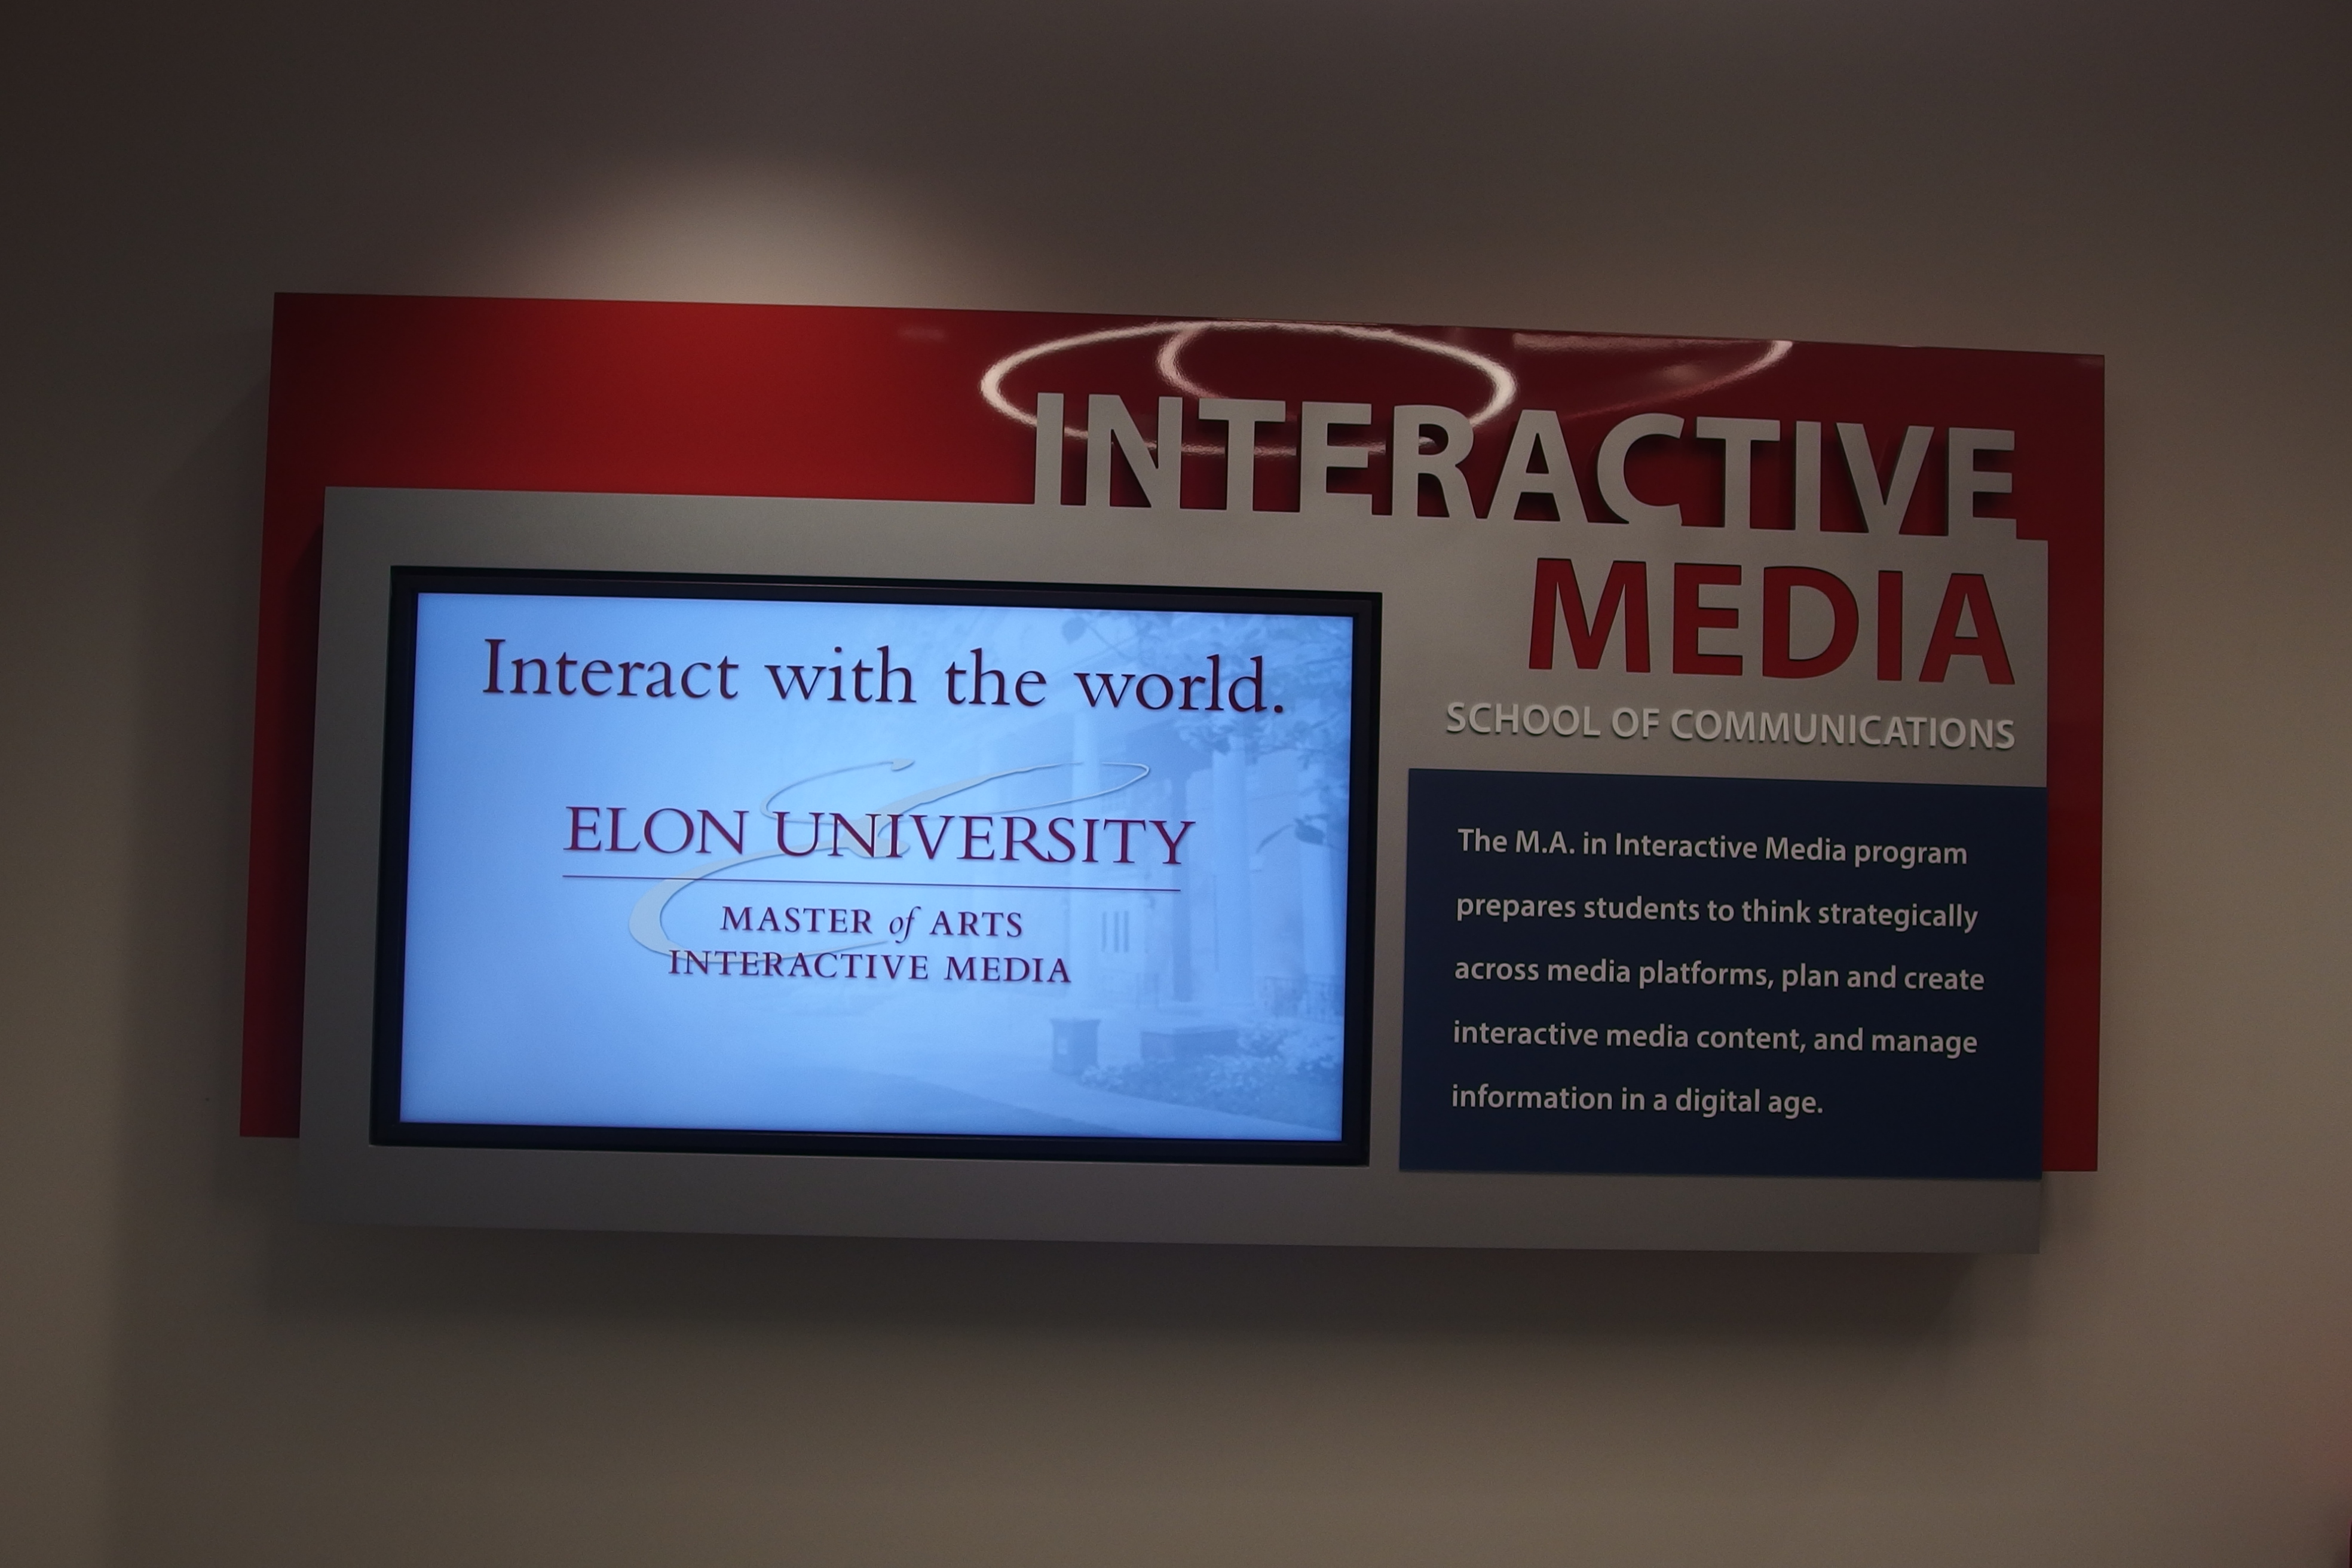 Photo of the Interactive Media School of Communications screen